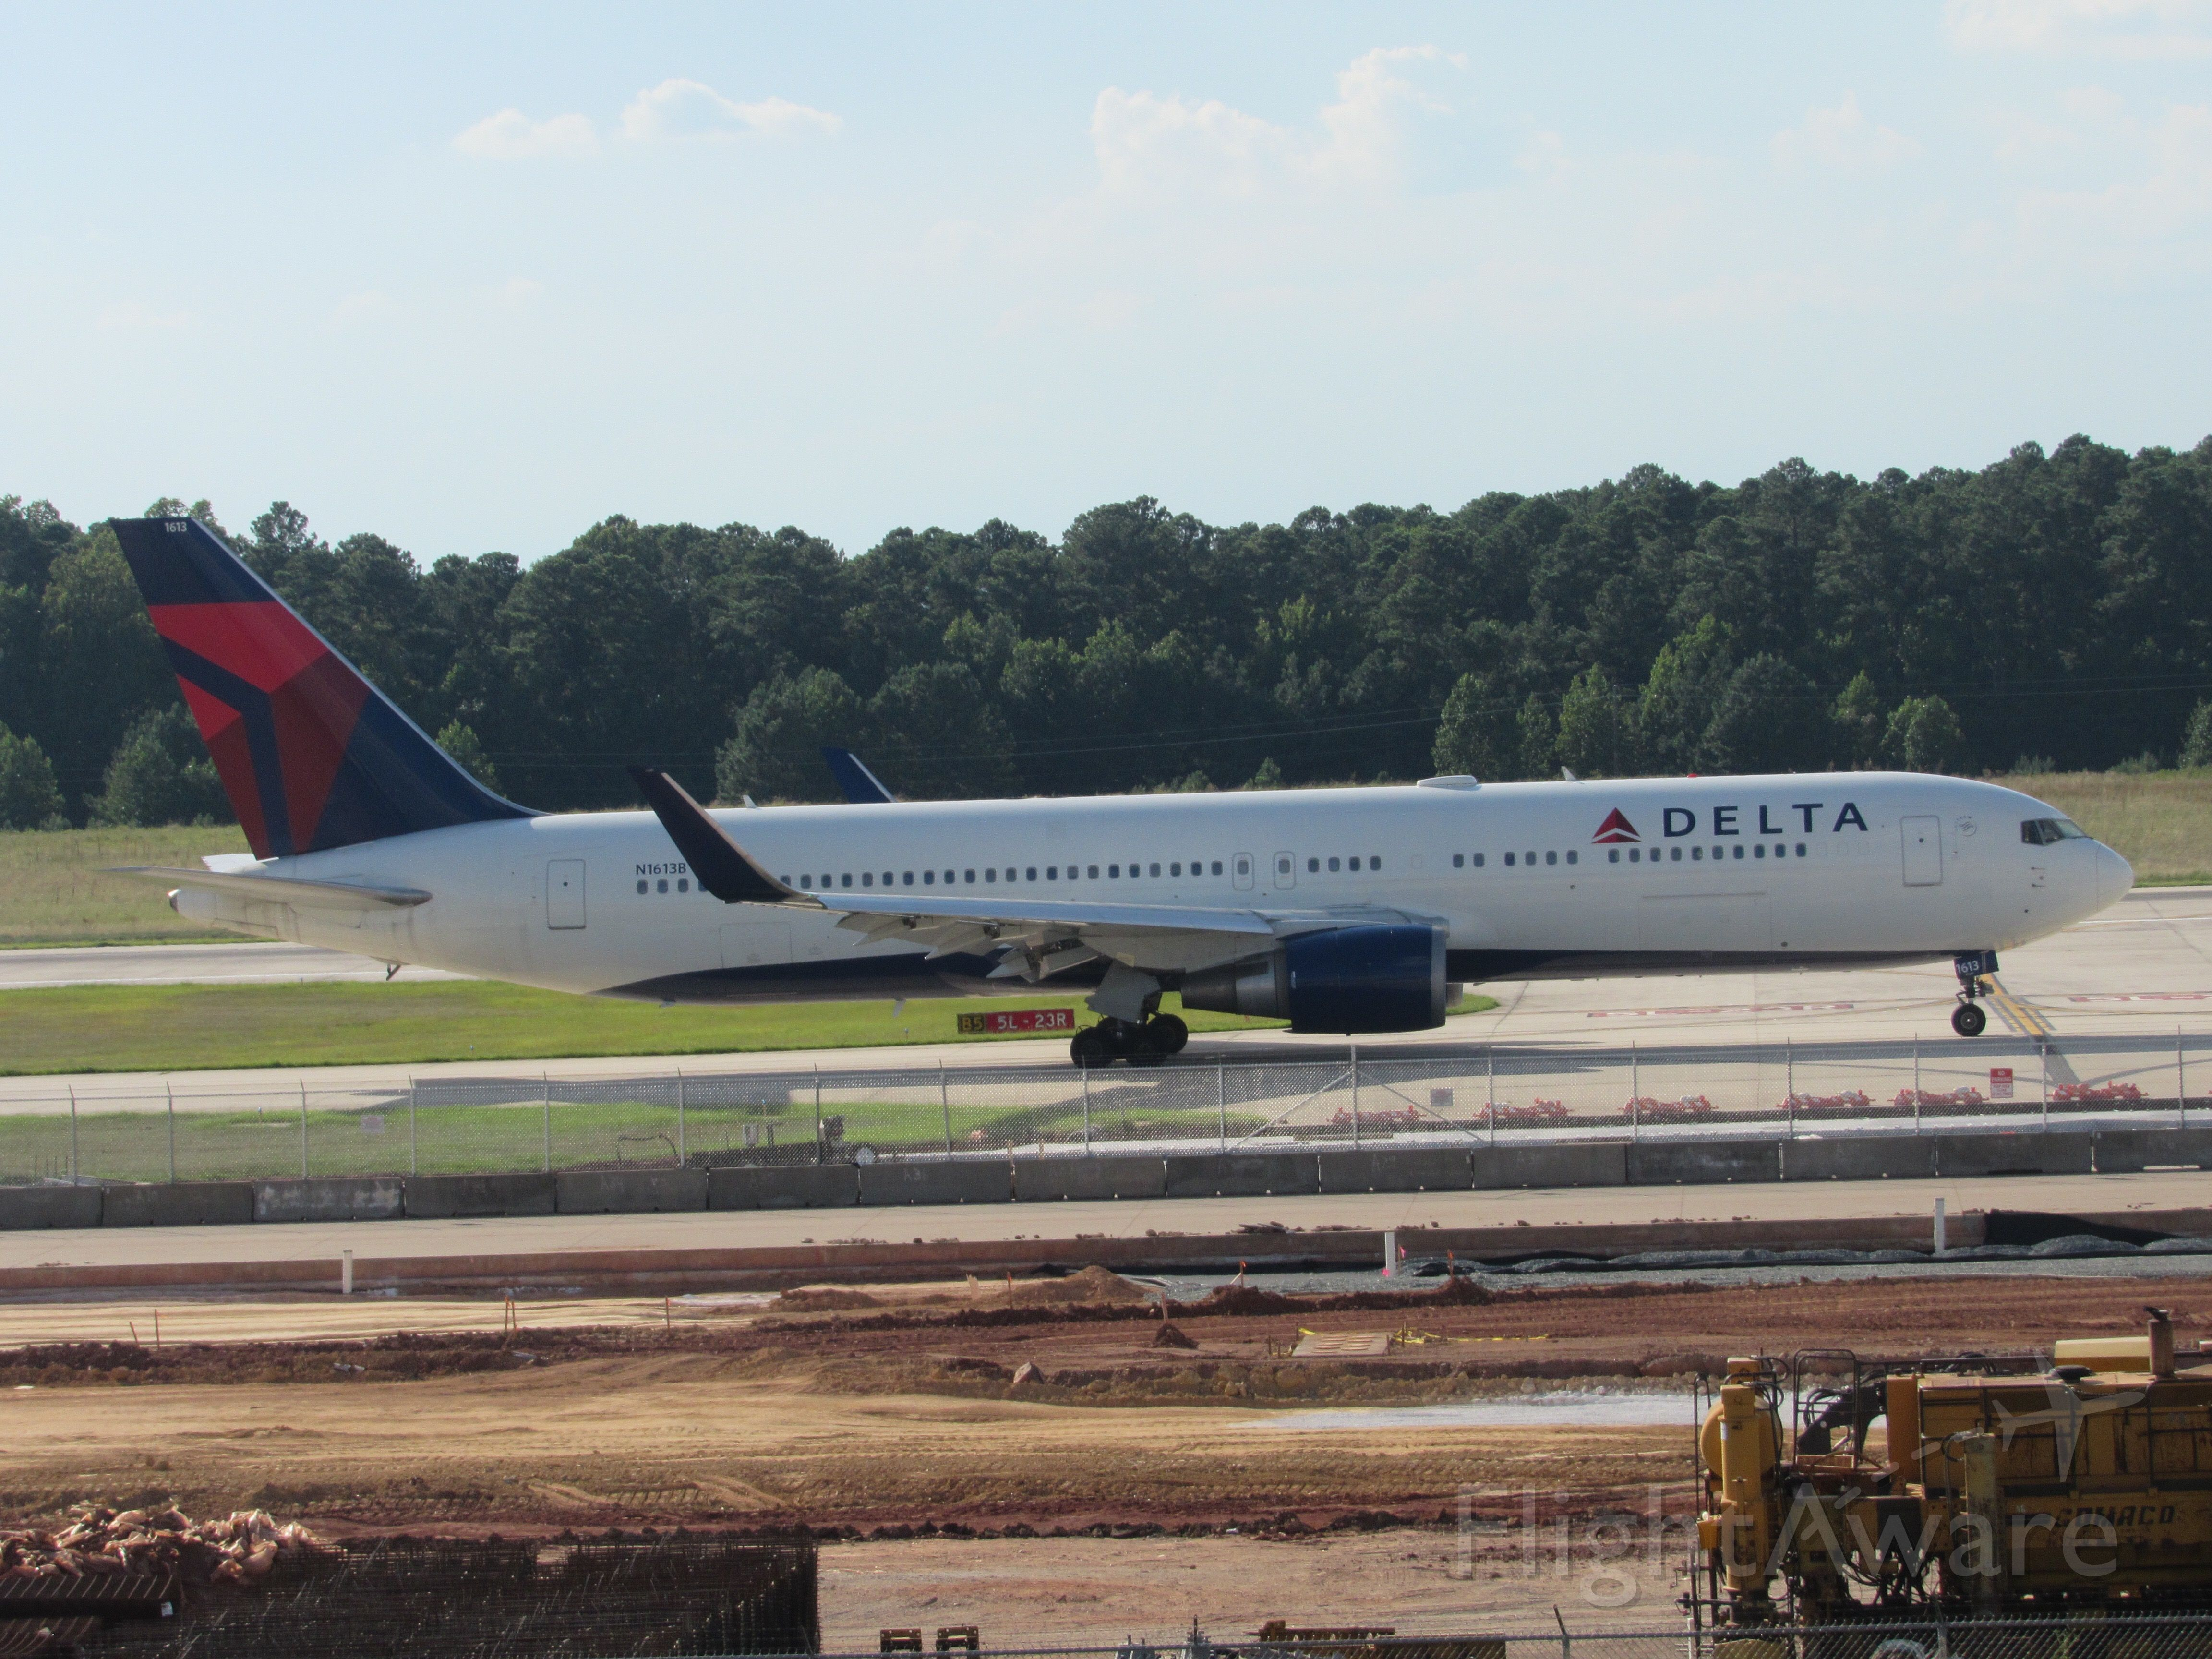 BOEING 767-300 (N1613B) - Delta 230 getting ready for its journey to Paris CDG! Taken July 21, 2019.